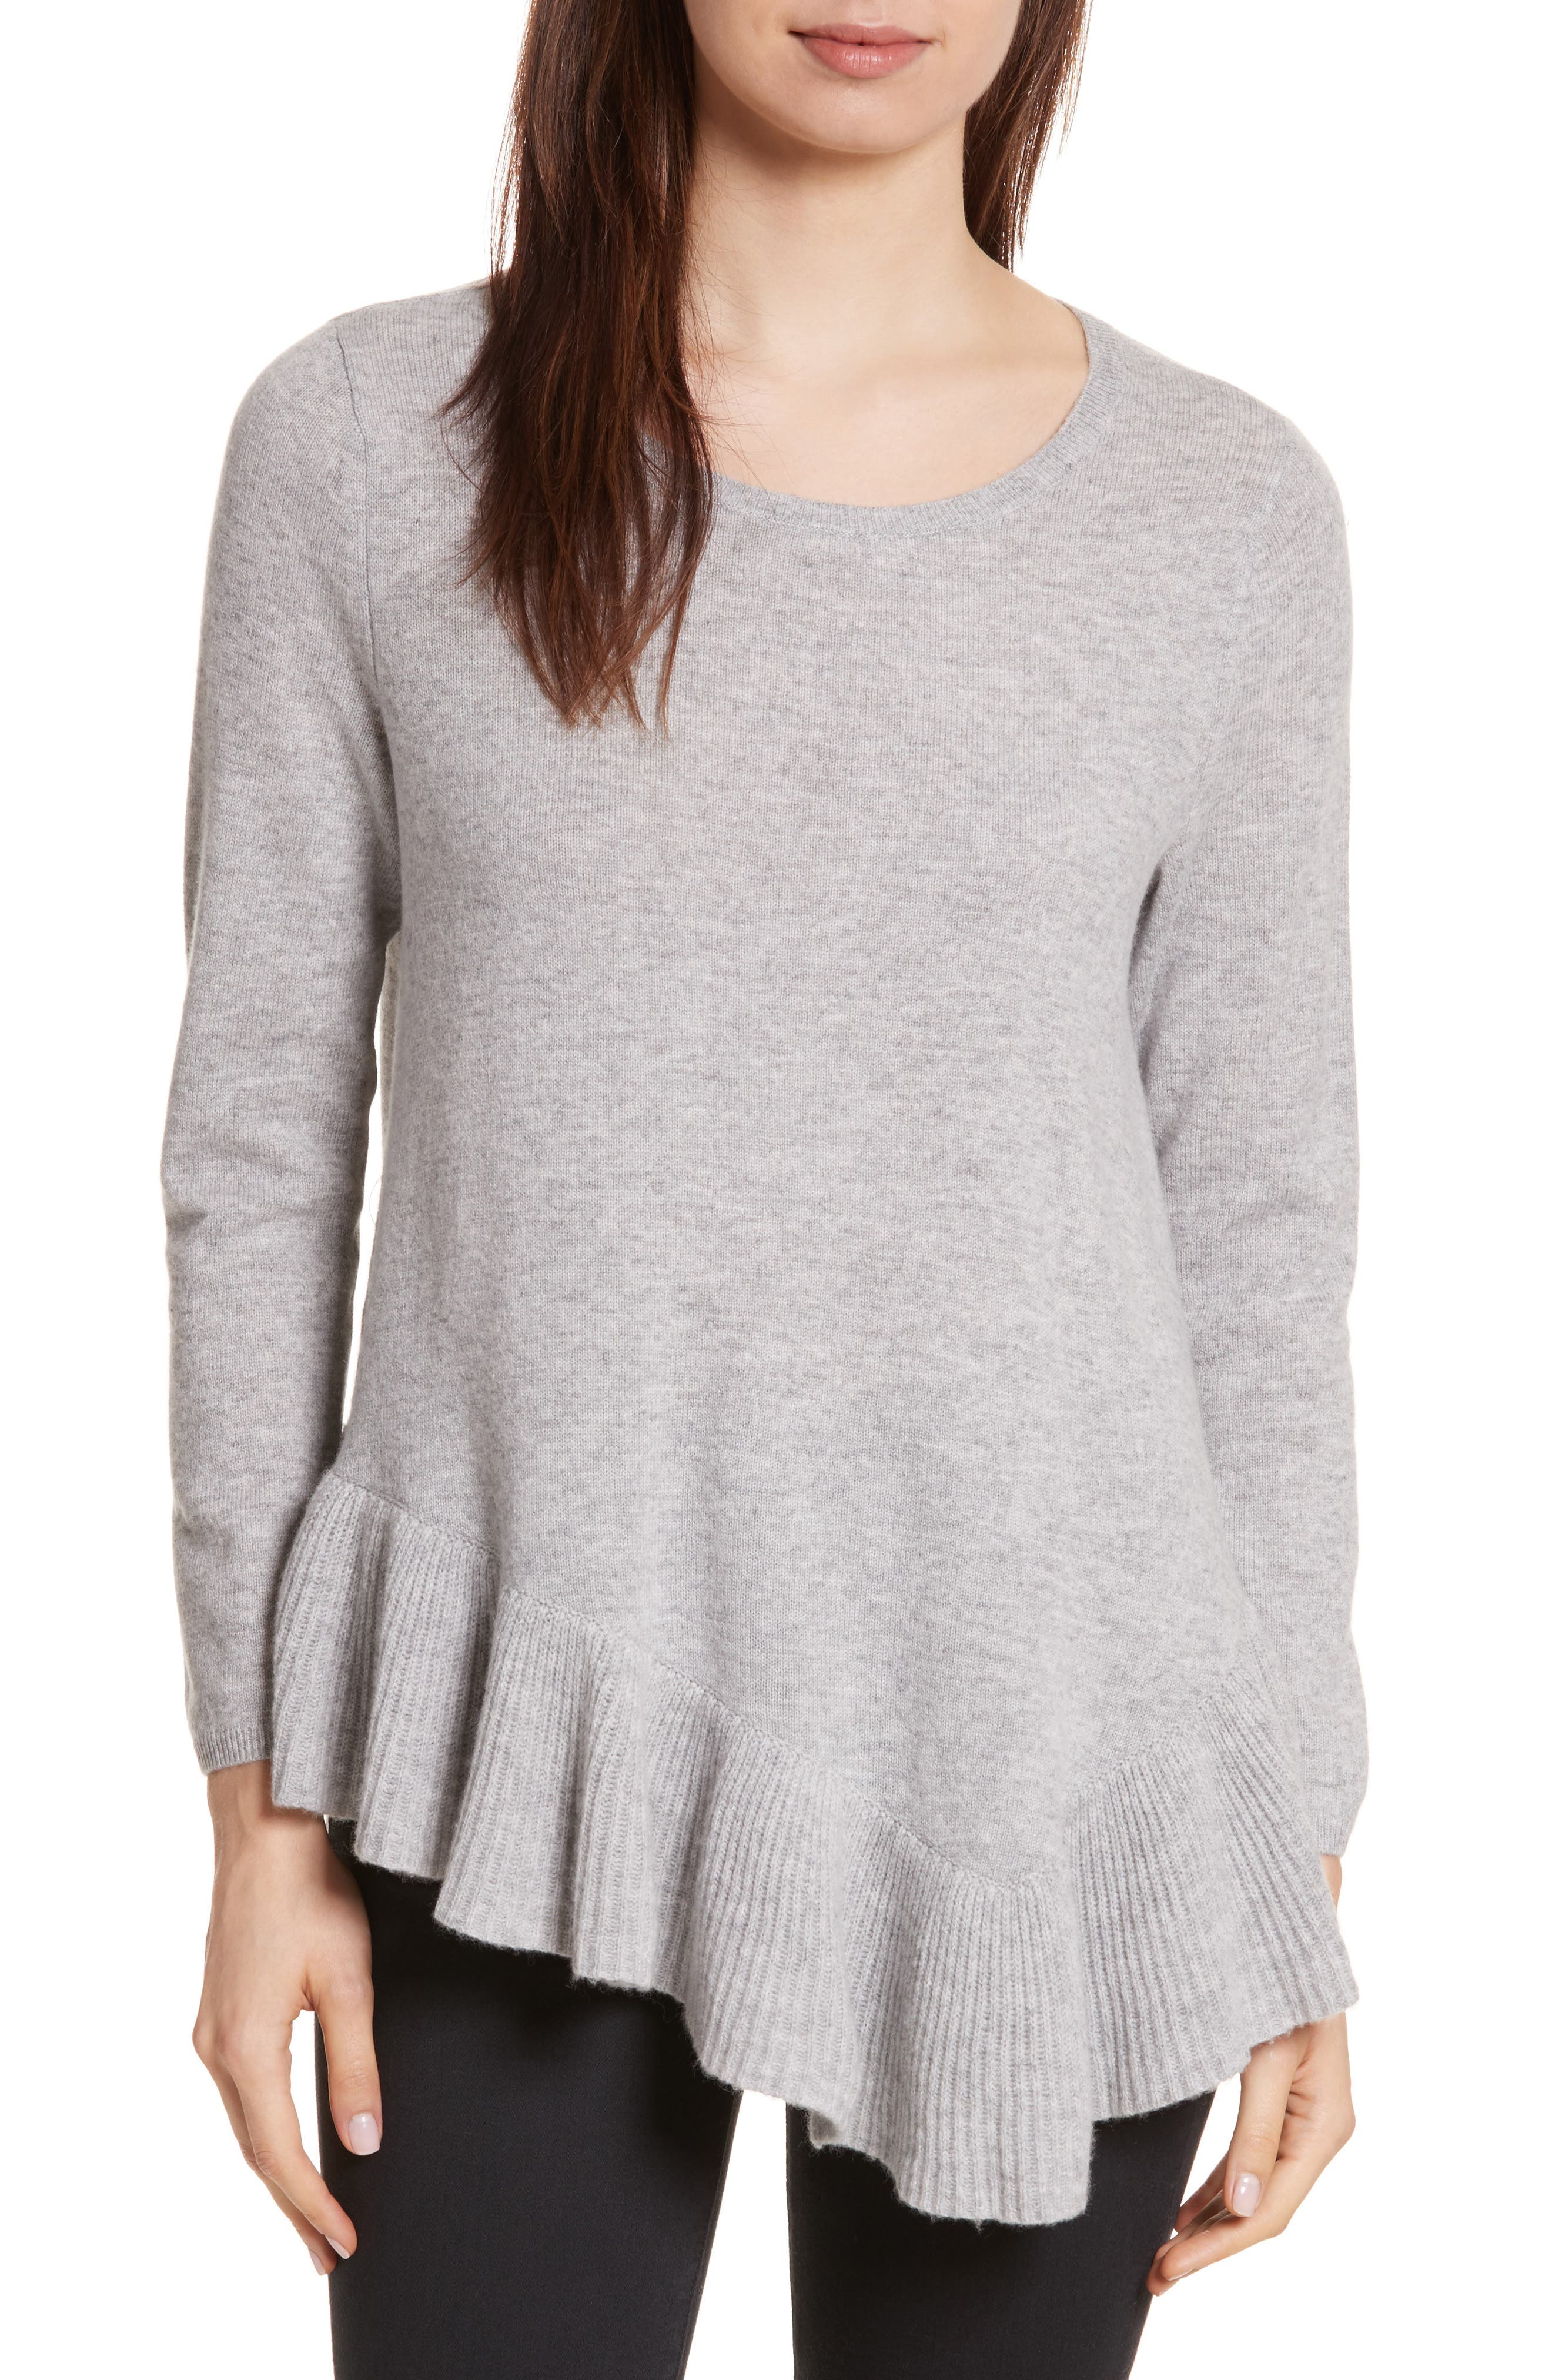 Main Image - Joie Tambrel N Wool & Cashmere Asymmetrical Sweater Tunic